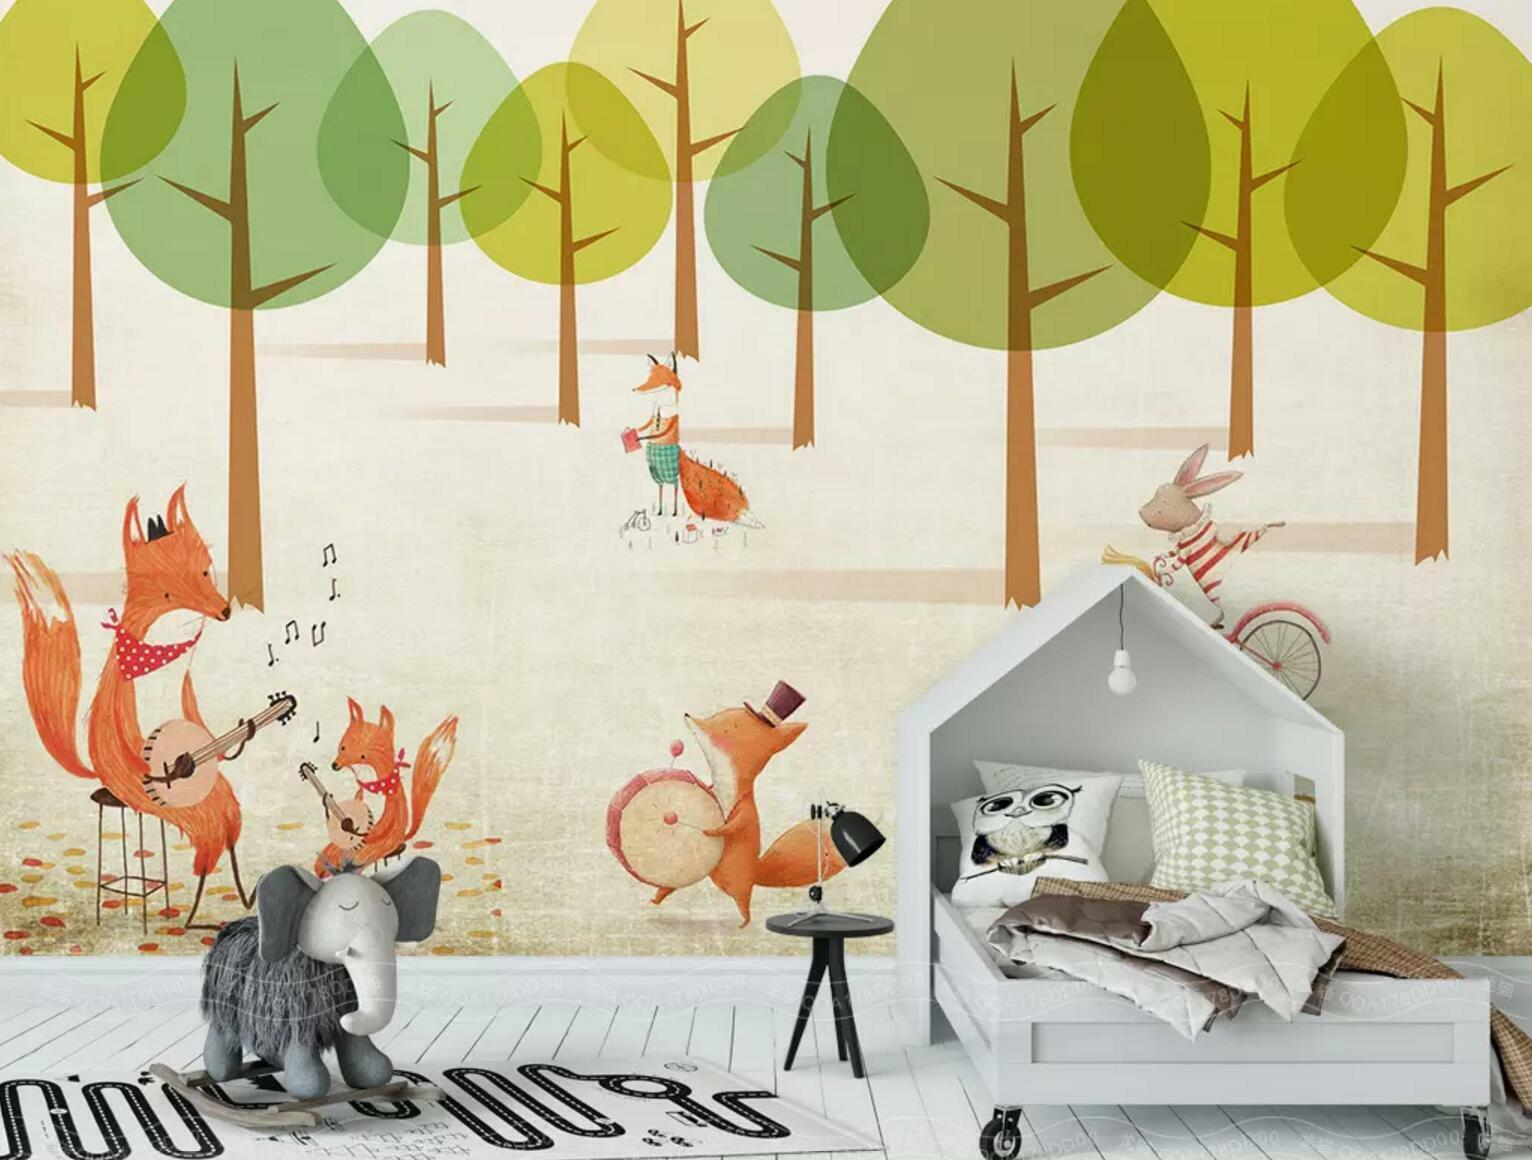 3D Forest Fox Tree 93 Wall Paper Exclusive MXY Wallpaper Mural Decal Indoor Wall